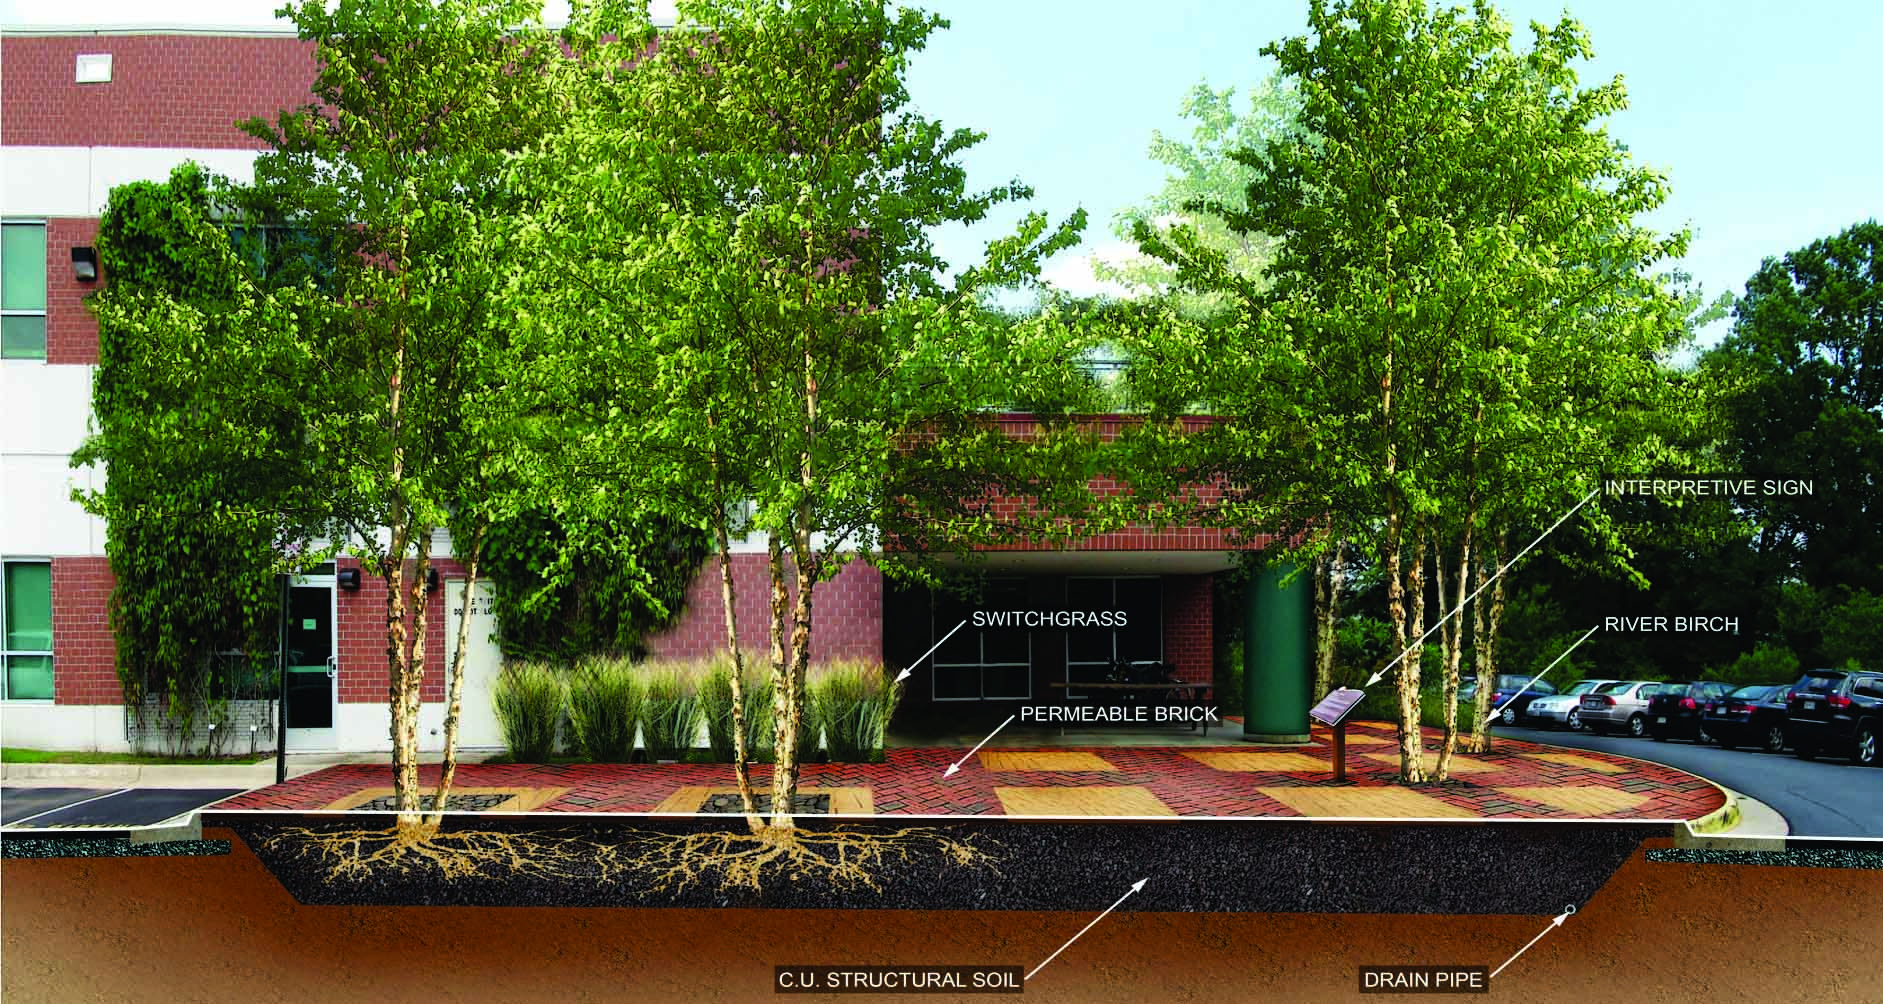 Rendering of potential patio design highlighting the use of permeable pavement and C.U. Structural Soil at WSSI's LEED Gold-certified office in Gainesville, VA.